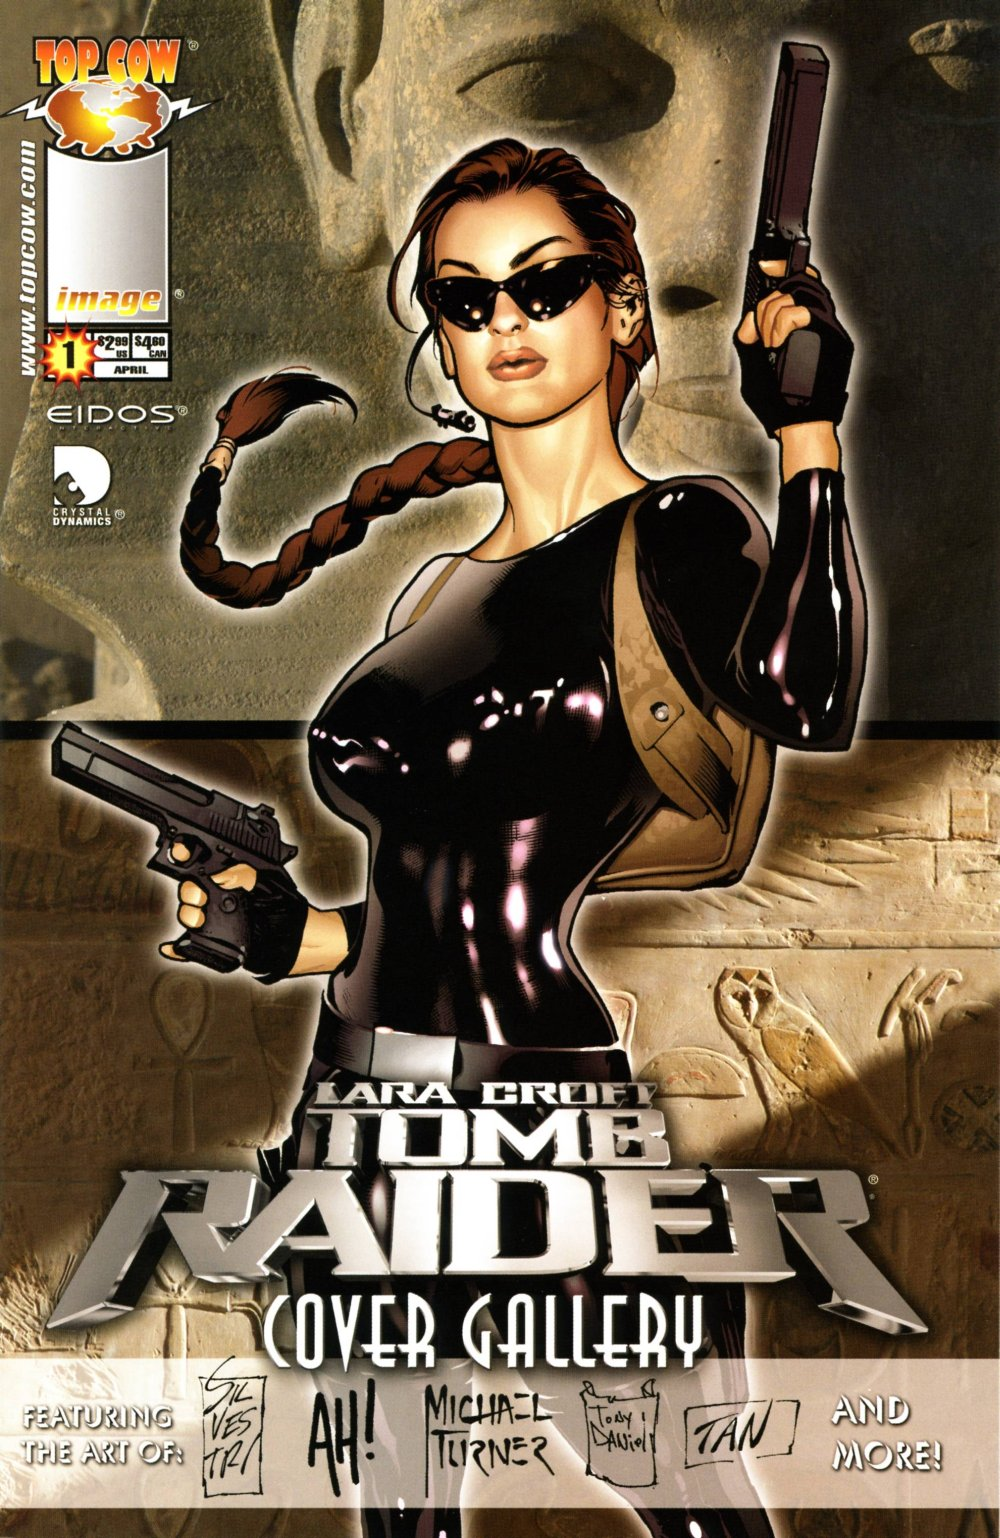 Tomb Raider- Cover Gallery [Image Top Cow] OS1 0001.jpg